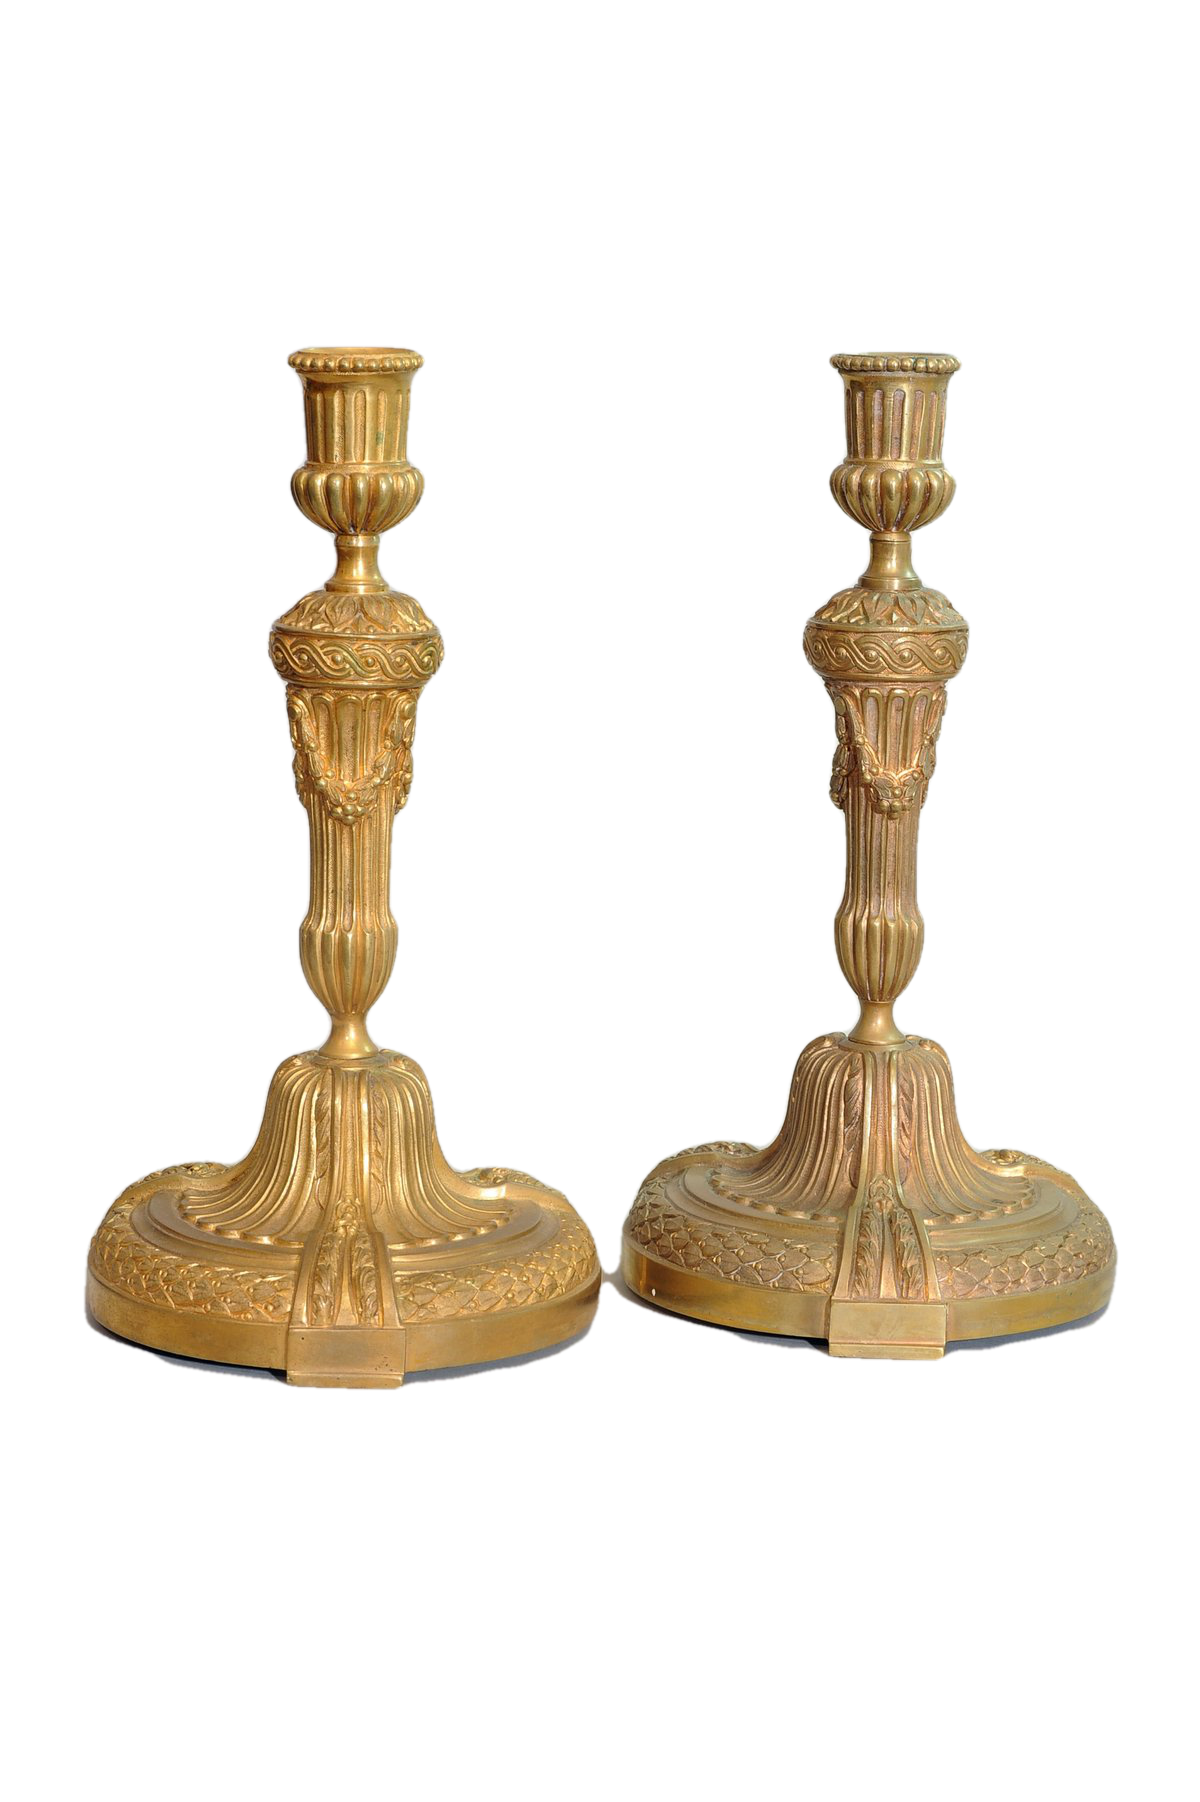 Pair of Louis XVI Style Gilt Bronze Candlesticks. Portugal, 20th Century